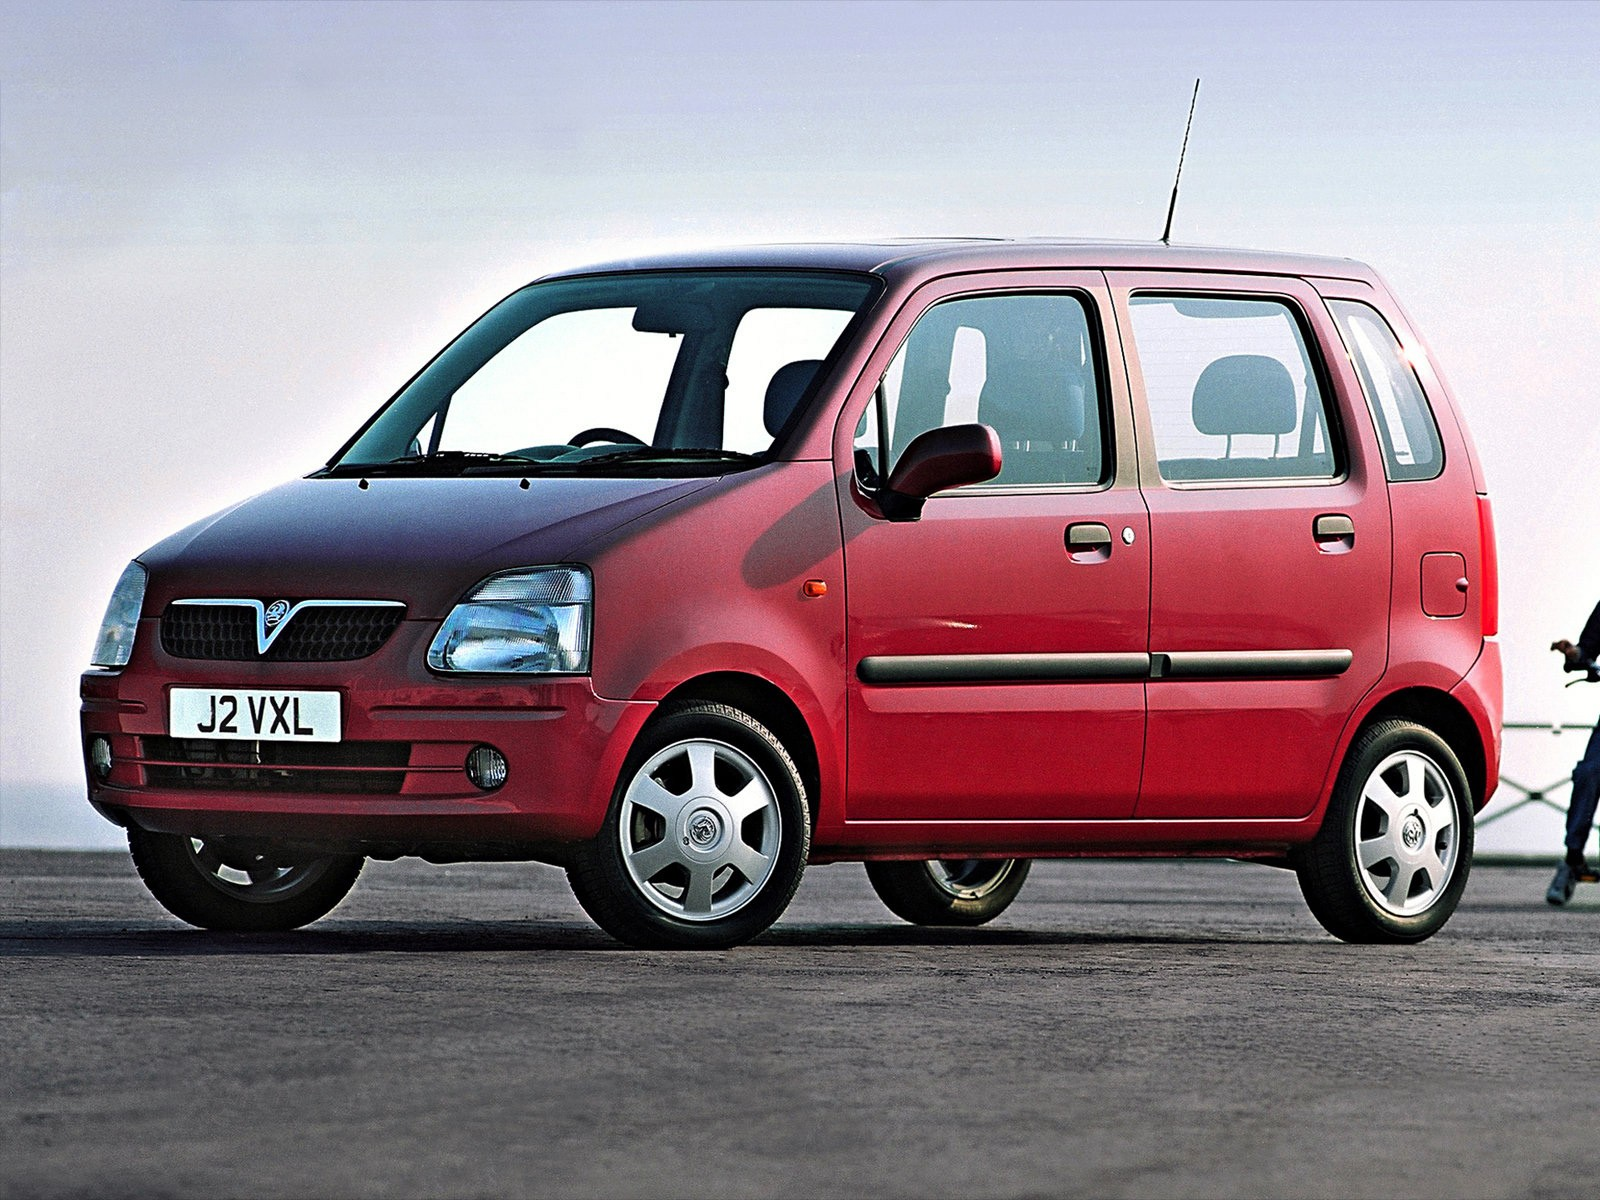 Vauxhall agila photo - 9